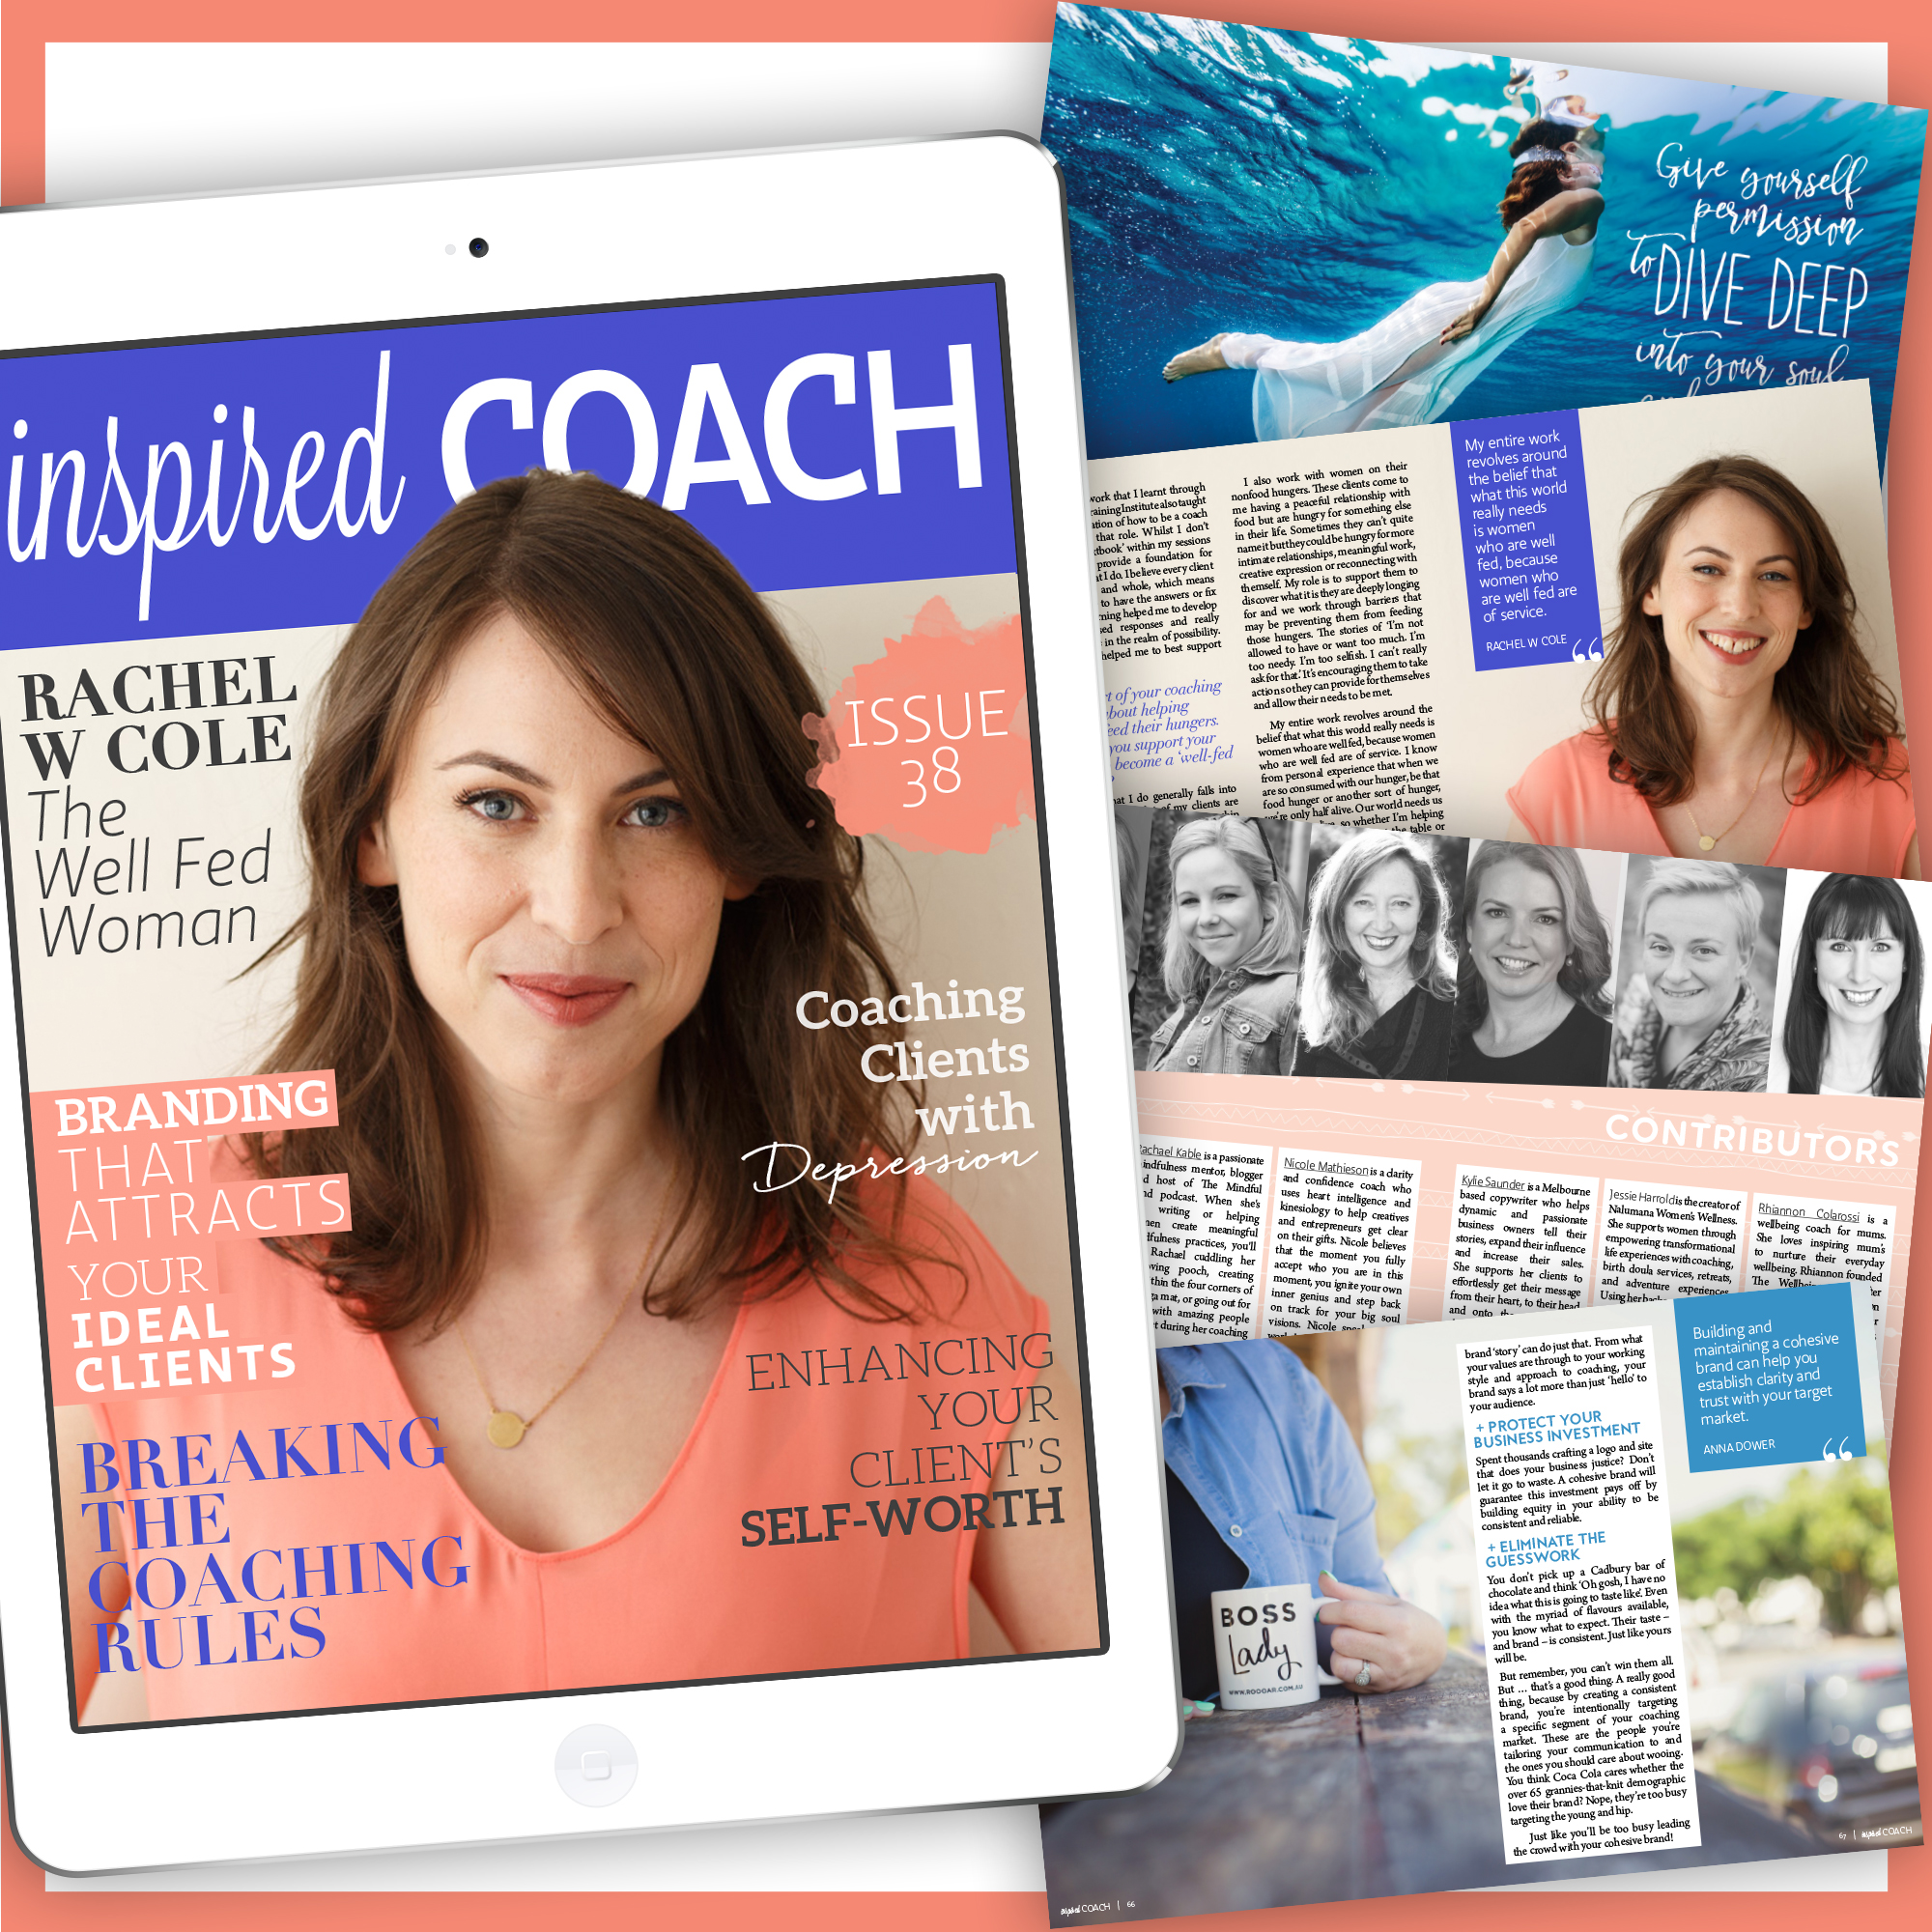 eMagazine design for inspired Coach - Beautiful You Coaching Academy.